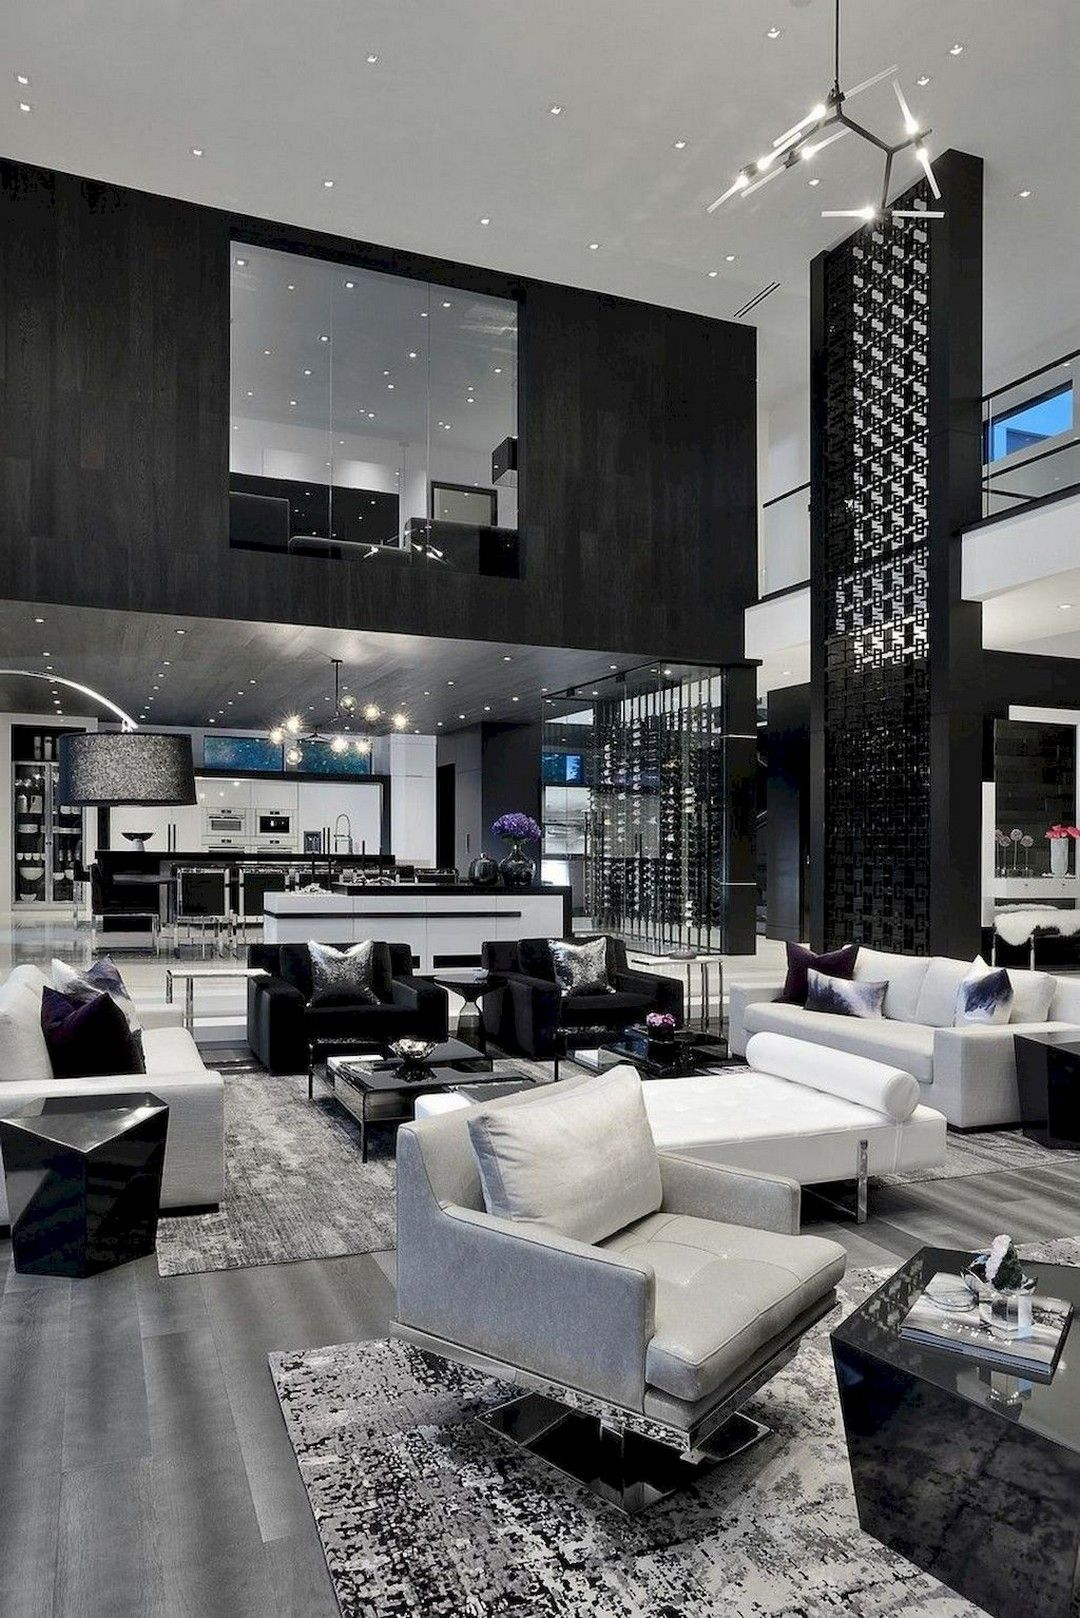 What Do You Think About This Fascinating Home Interior Design